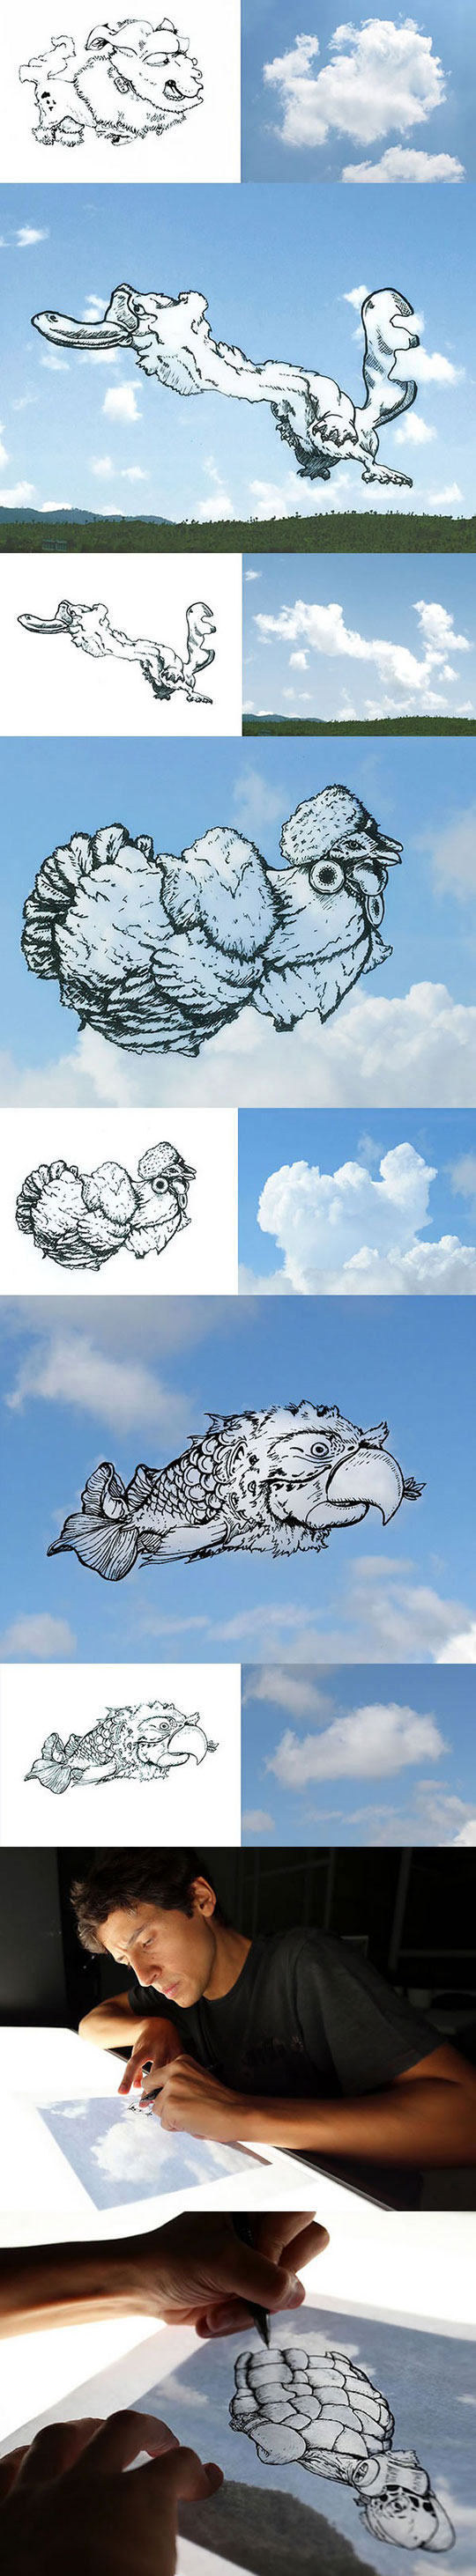 cool-cloud-animals-drawing-artist